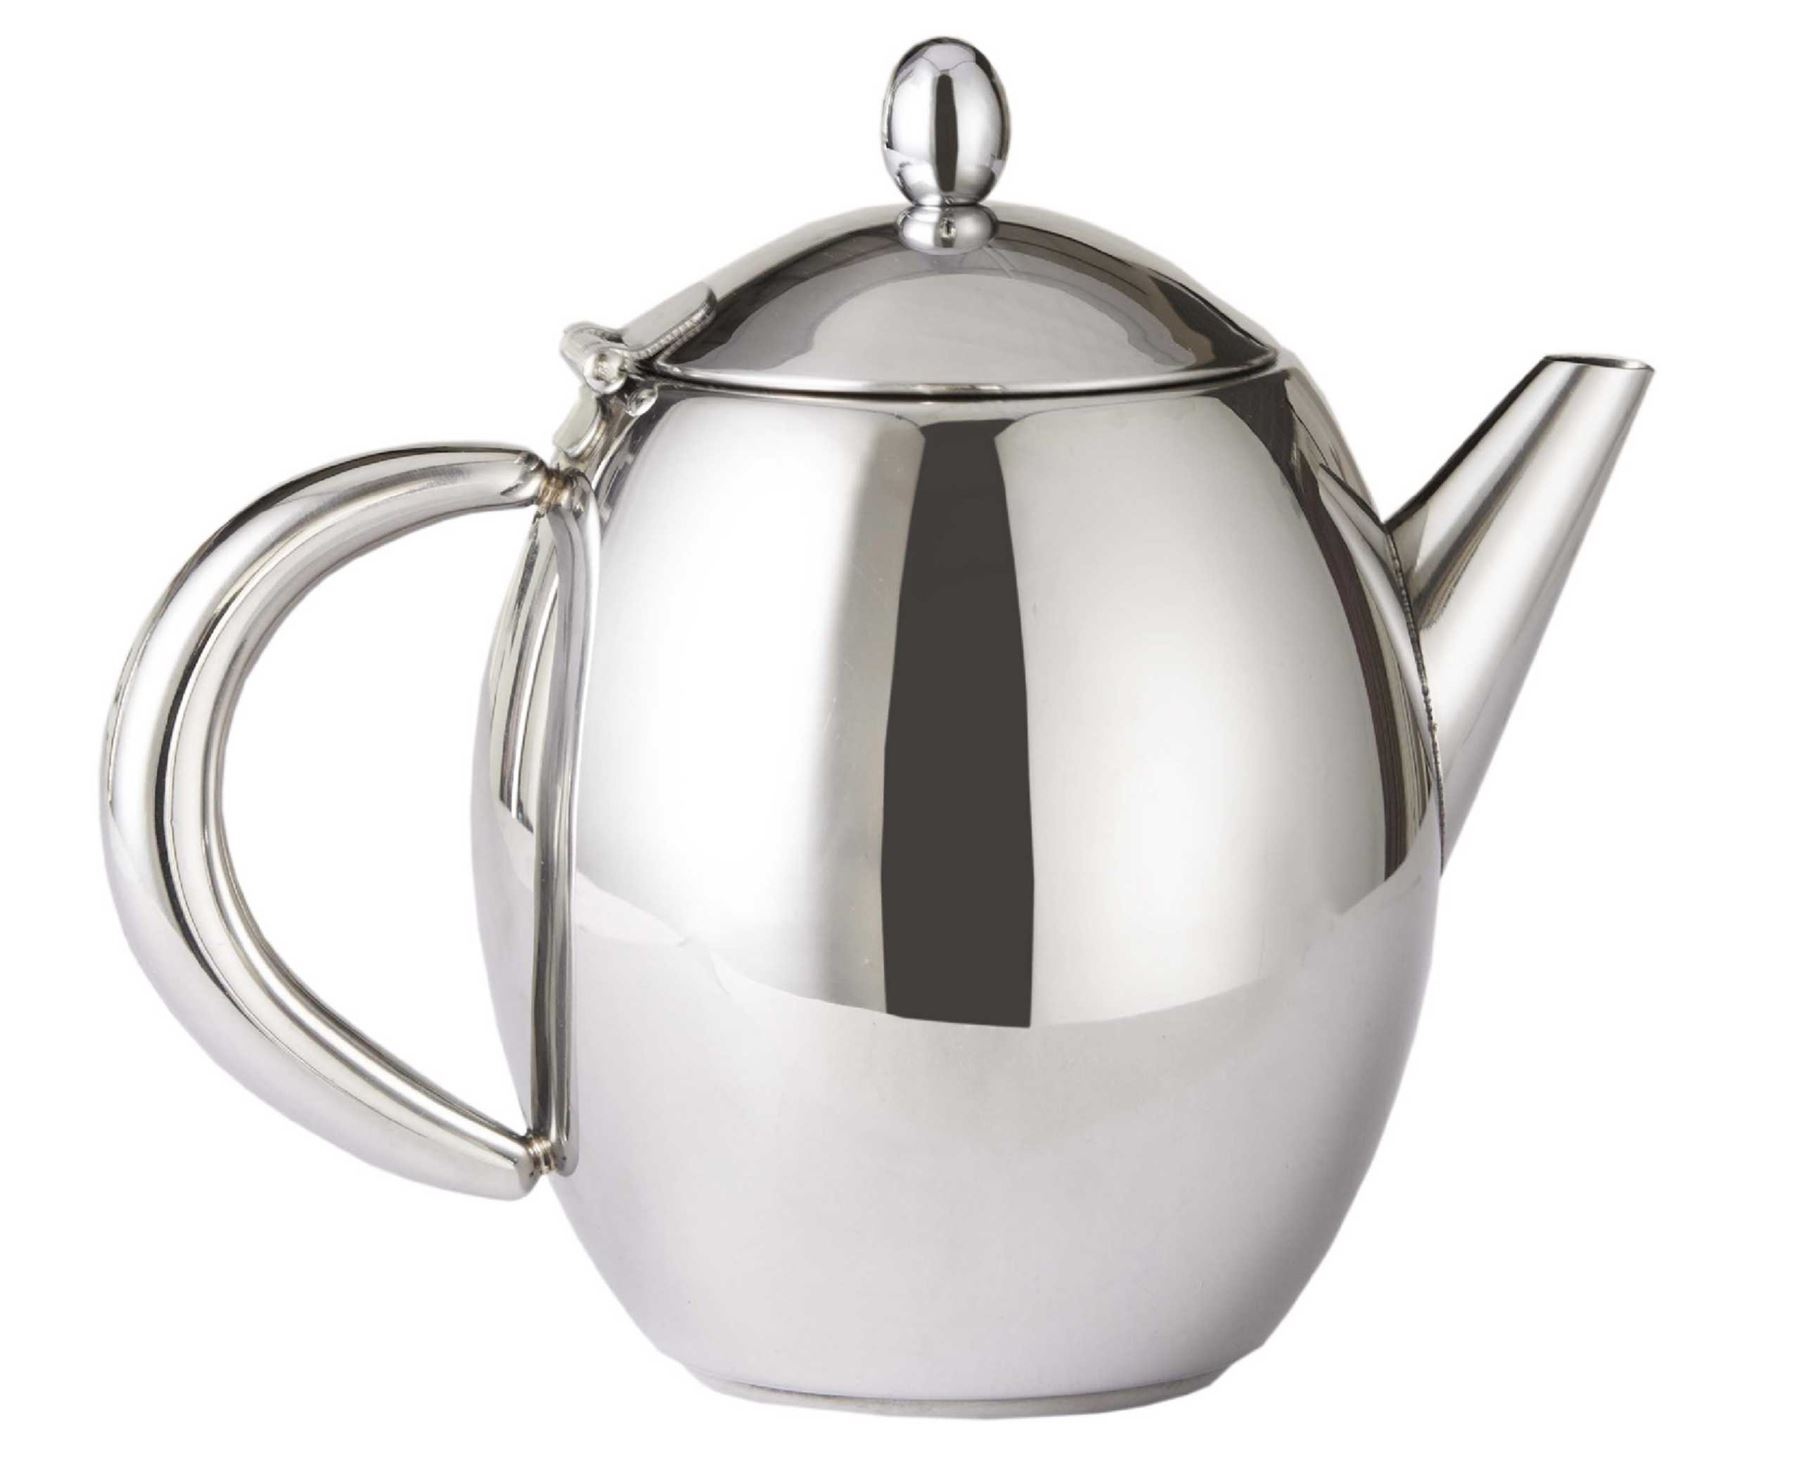 Scotts of stow stainless steel insulated teapot jug double - Cup stainless steel teapot ...